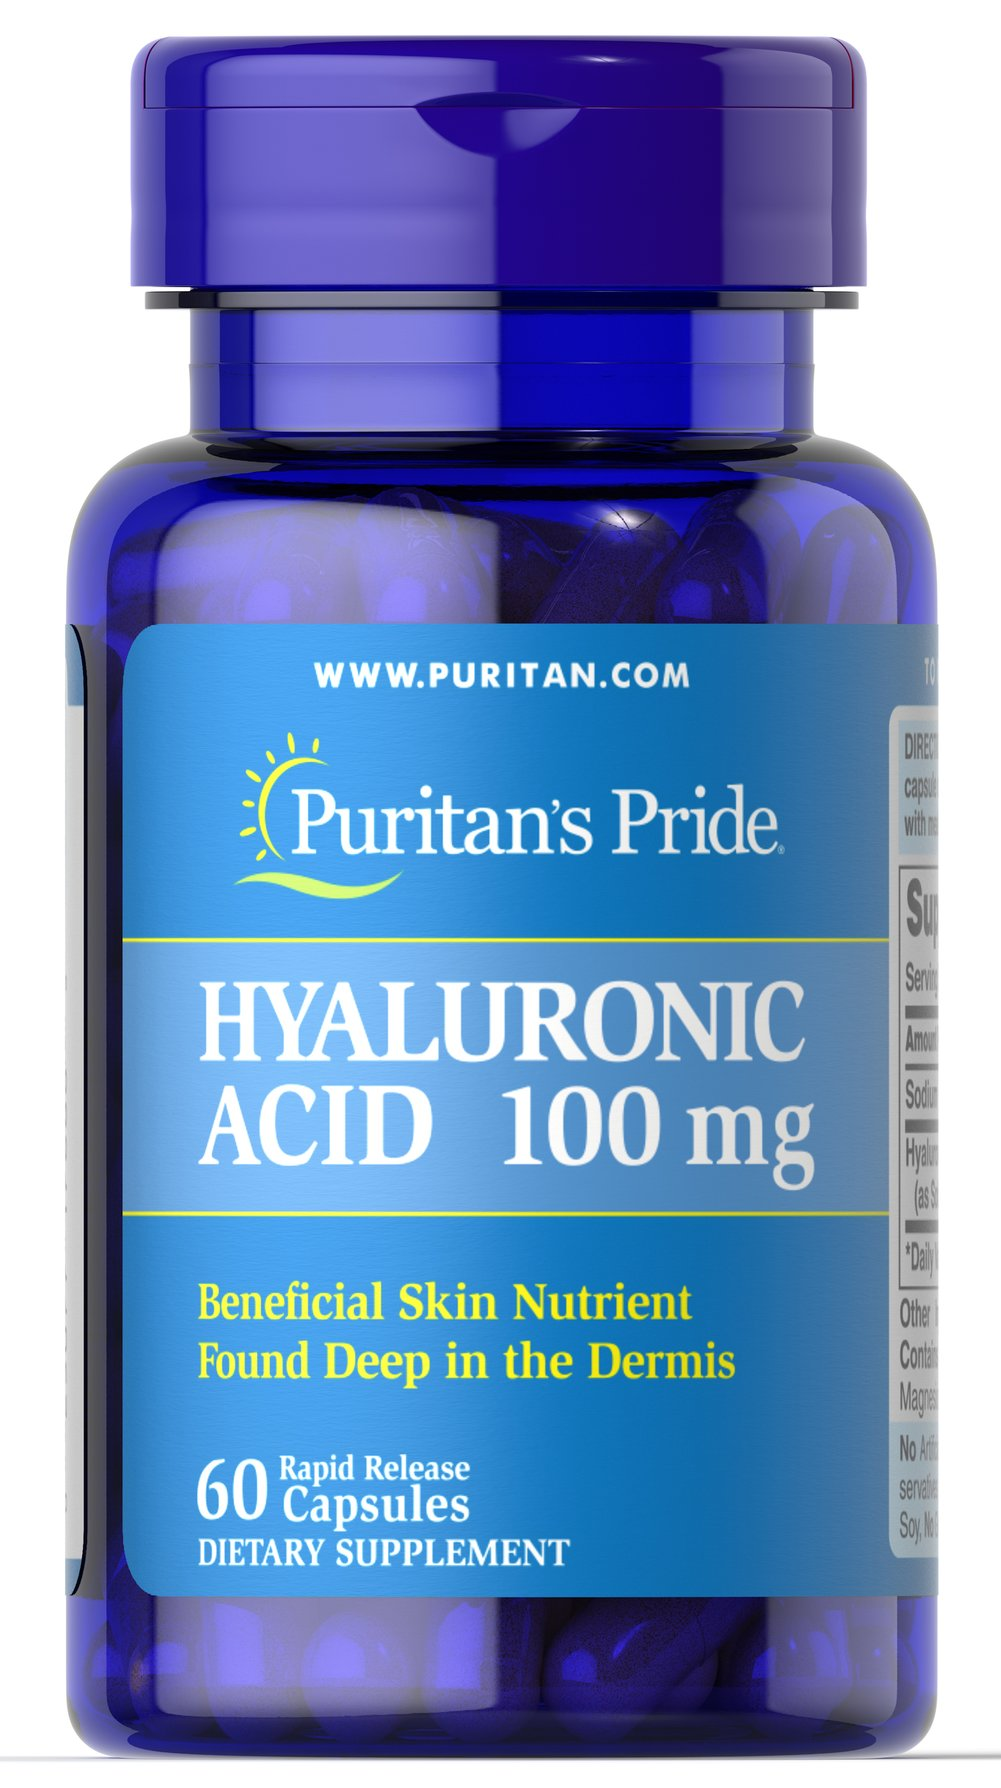 Hyaluronic Acid 100 mg <p>Helps lubricate joints**</p><p>Hyaluronic Acid is a polysaccharide found in almost all adult connective tissue, including joints, ligaments, tendons and skin.** Just one Hyaluronic Acid capsule a day can help maintain the fluid between your joints, providing the cushioning and lubrication necessary for easy movement.**</p> 60 Capsules 100 mg $13.49